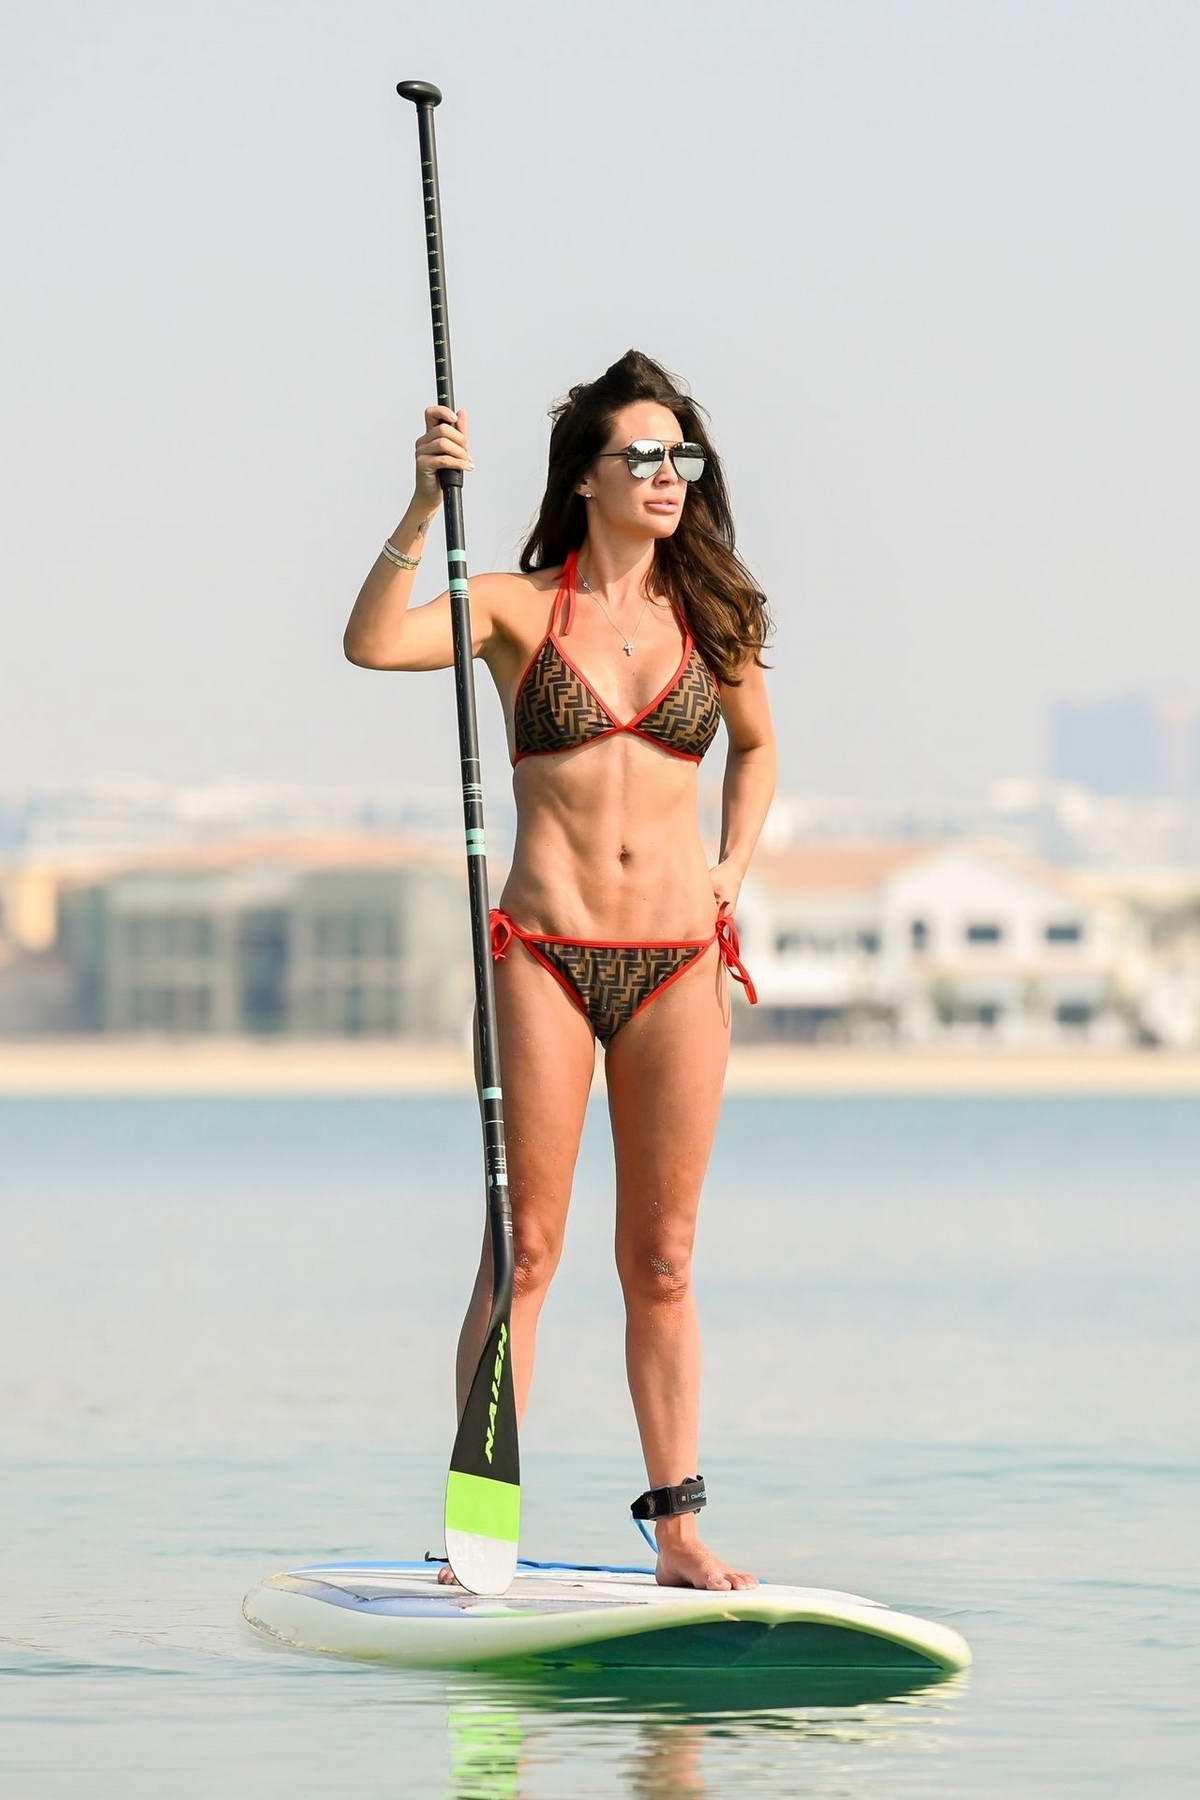 Danielle Lloyd seen wearing a FENDI bikini while paddle boarding in the sea in Dubai, UAE